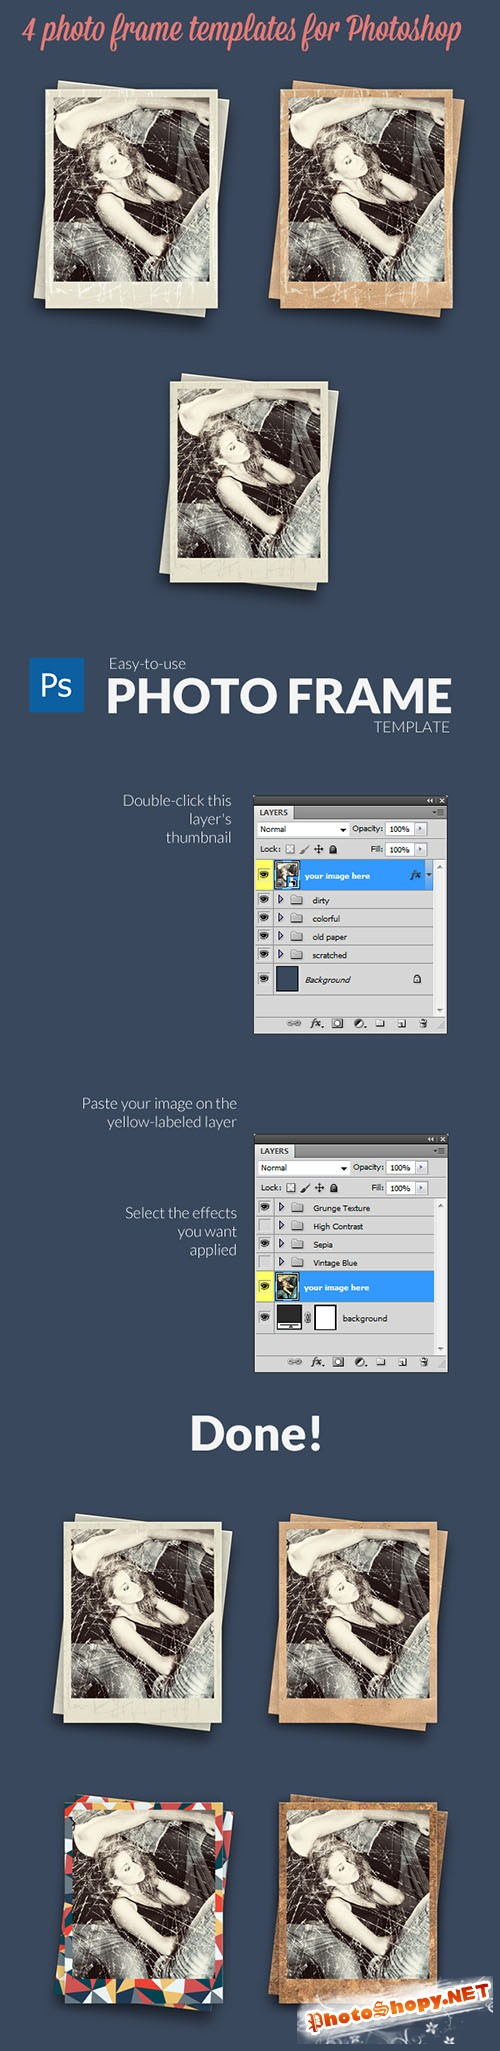 Designtnt - Photo Frames PS Generator